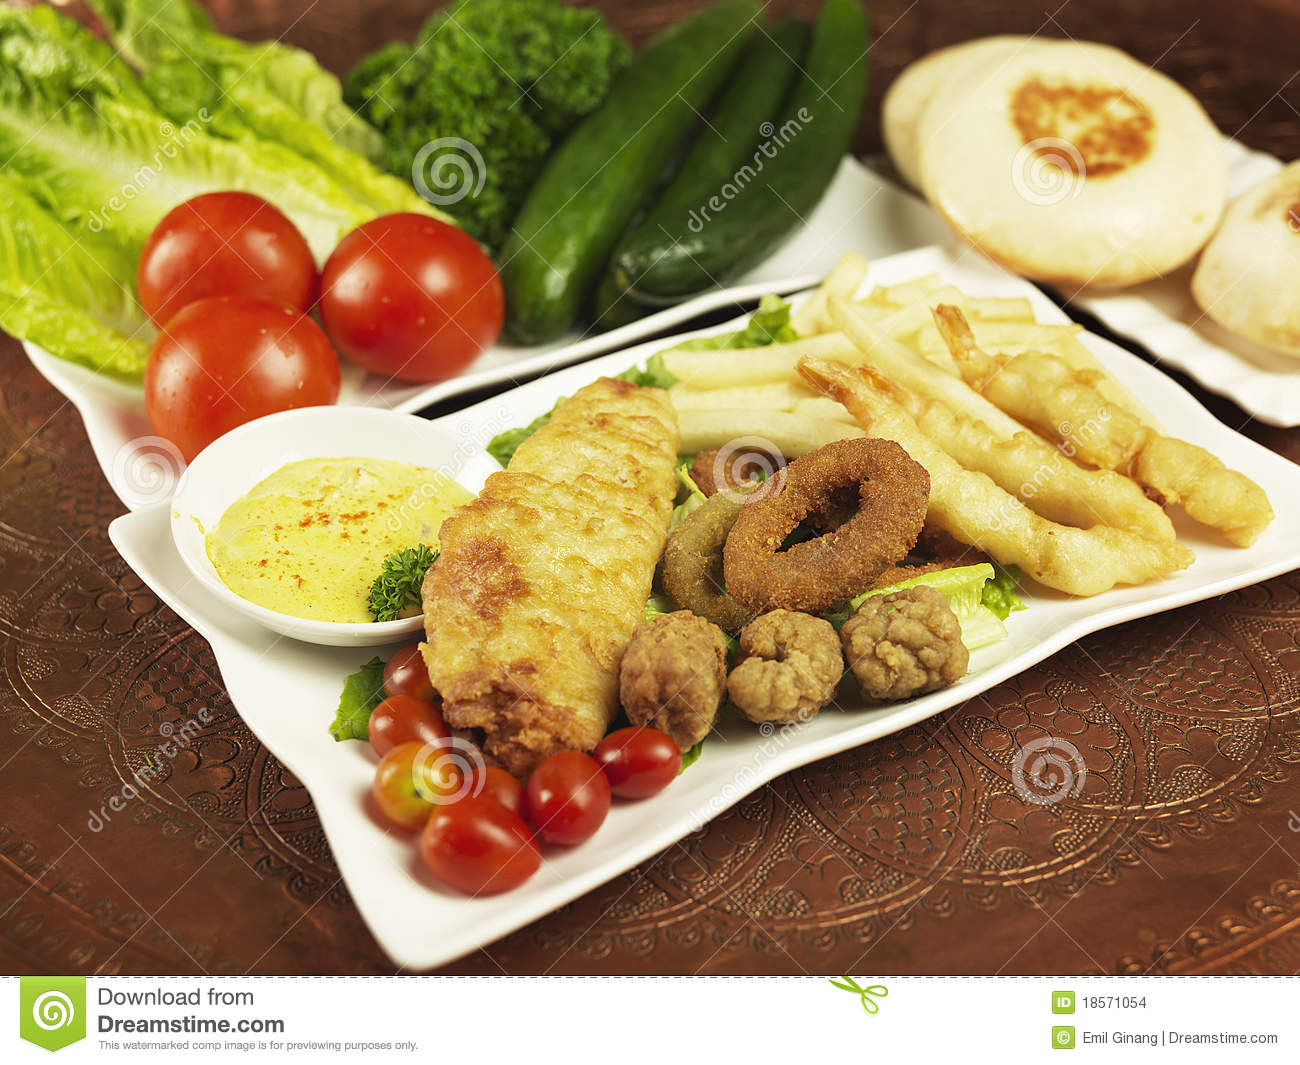 Arabic cuisine stock images image 18571054 for Arabic cuisine food